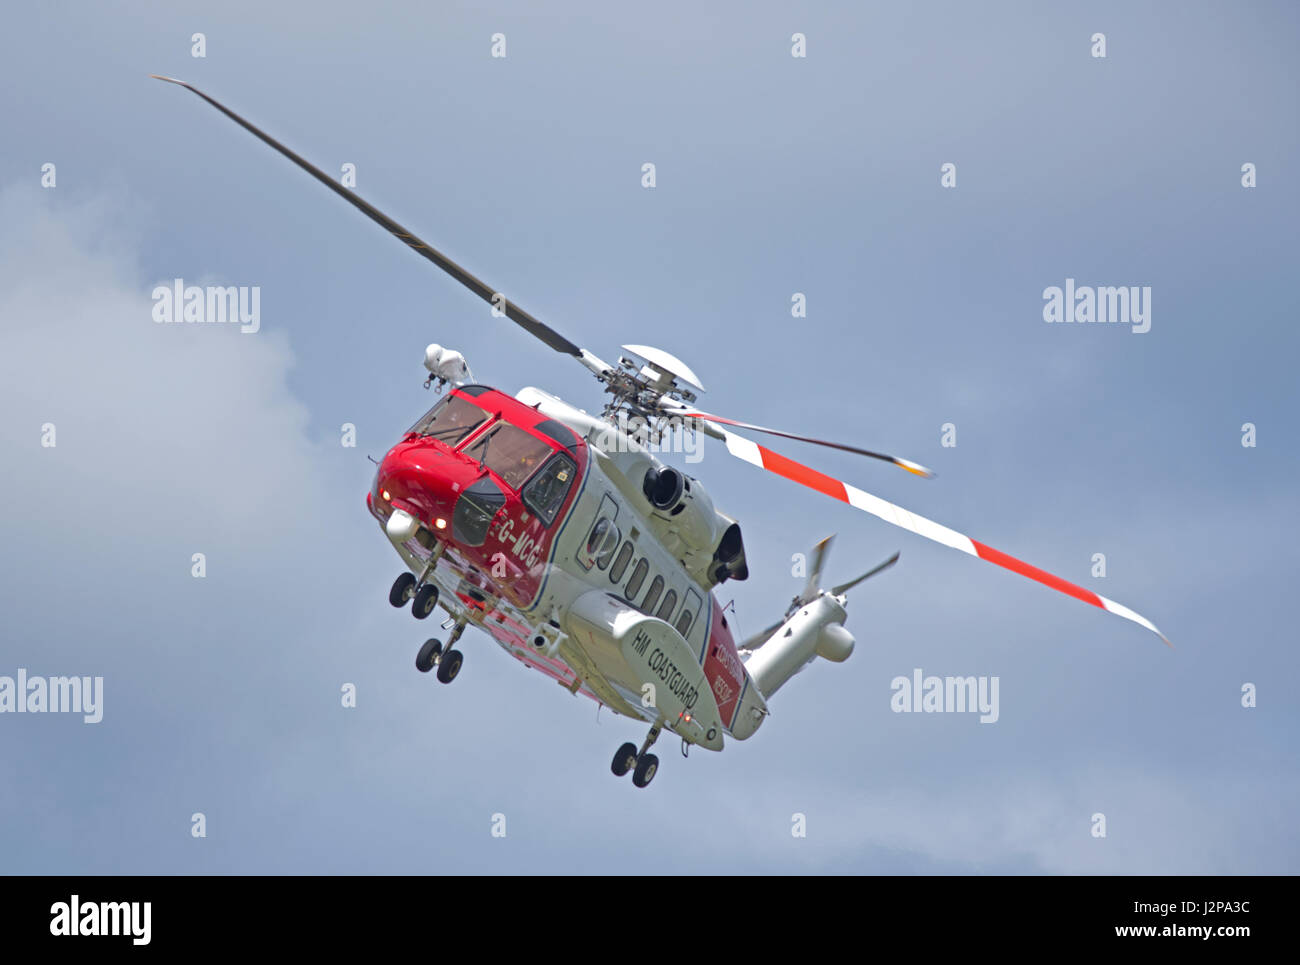 Coastguard helicopter departing from home base at Inverness Airport on call out. - Stock Image